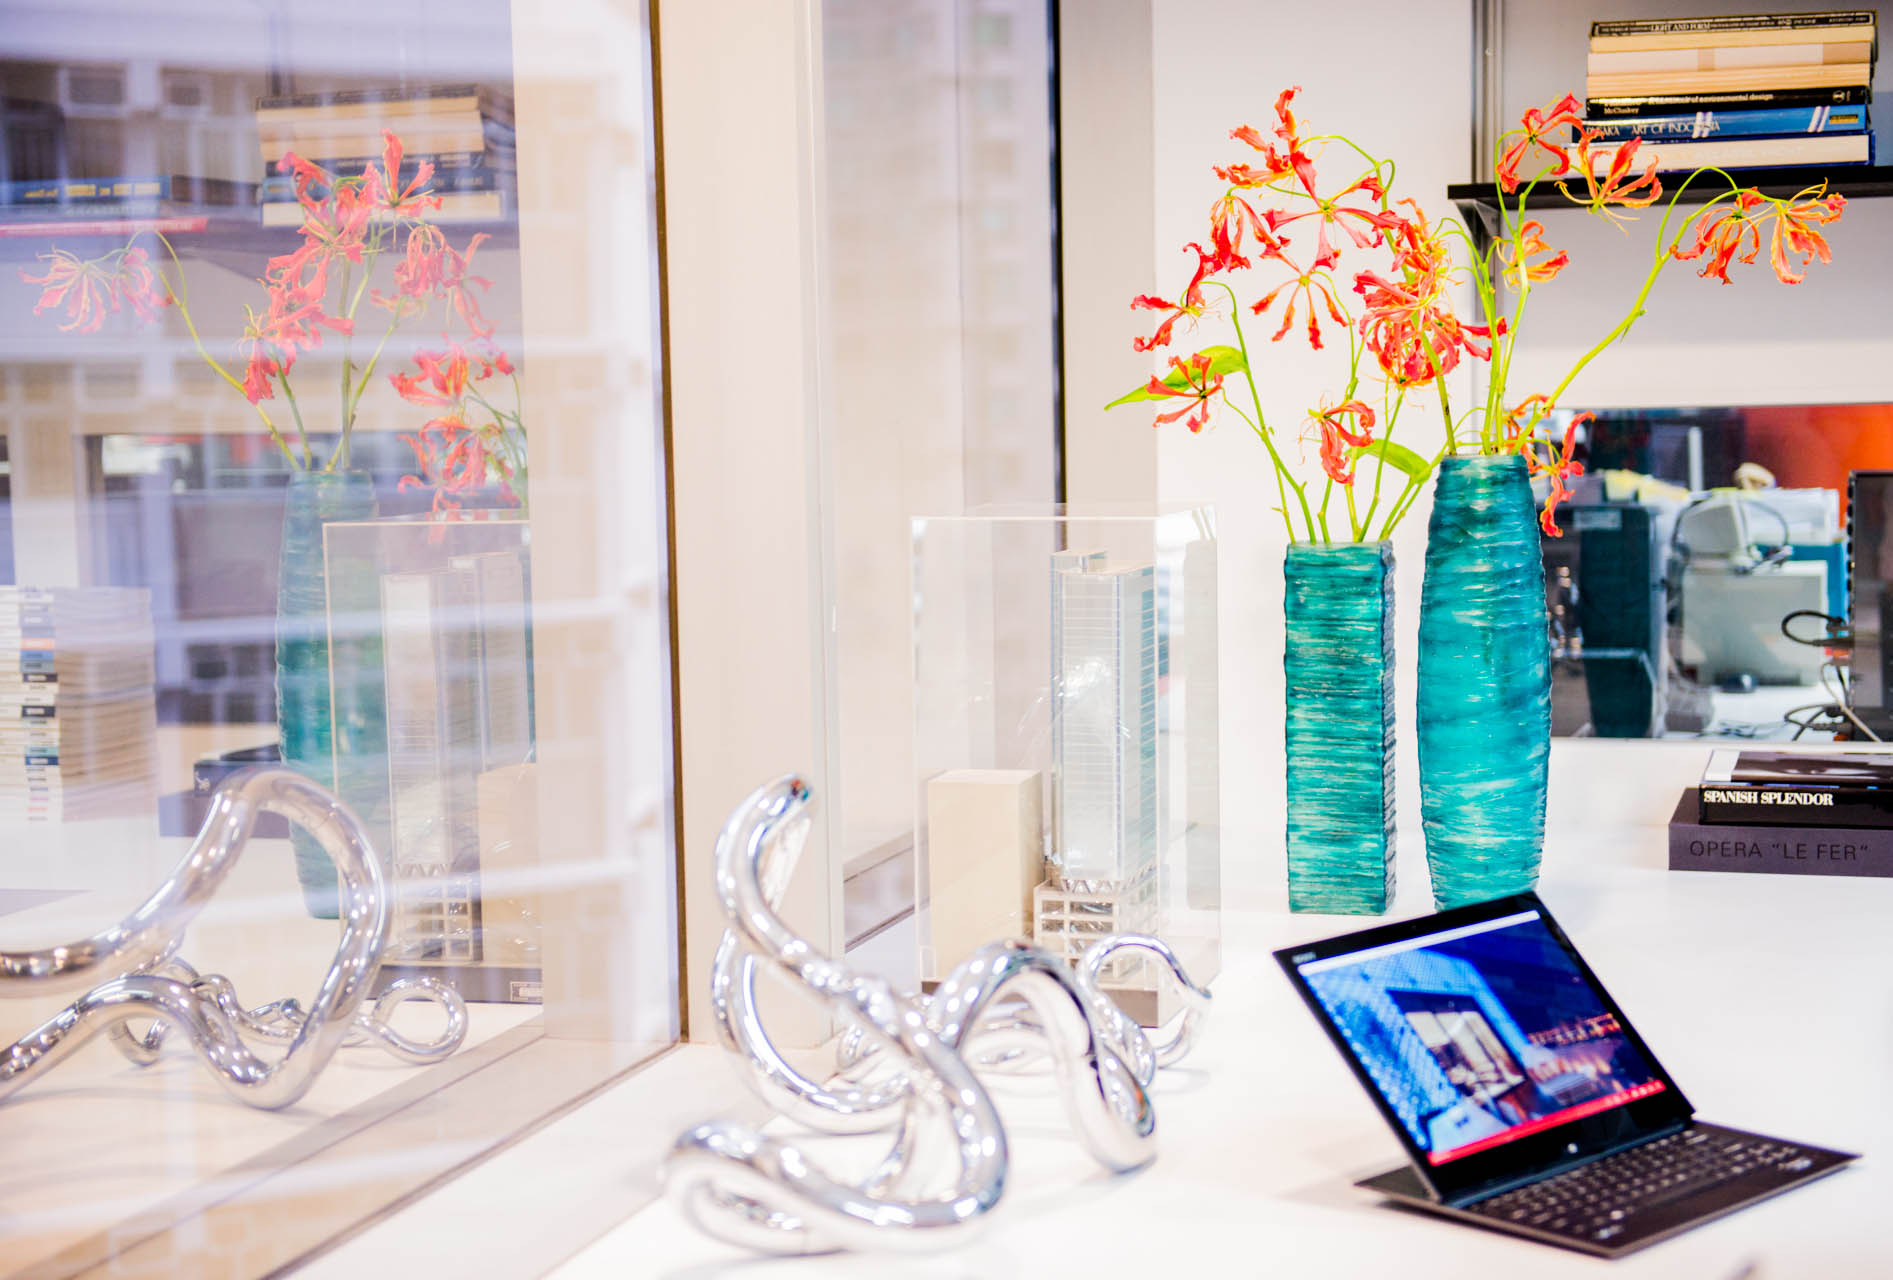 A laptop screen sits on a counter by the window showcasing one of DCMStudios signature retail designs.